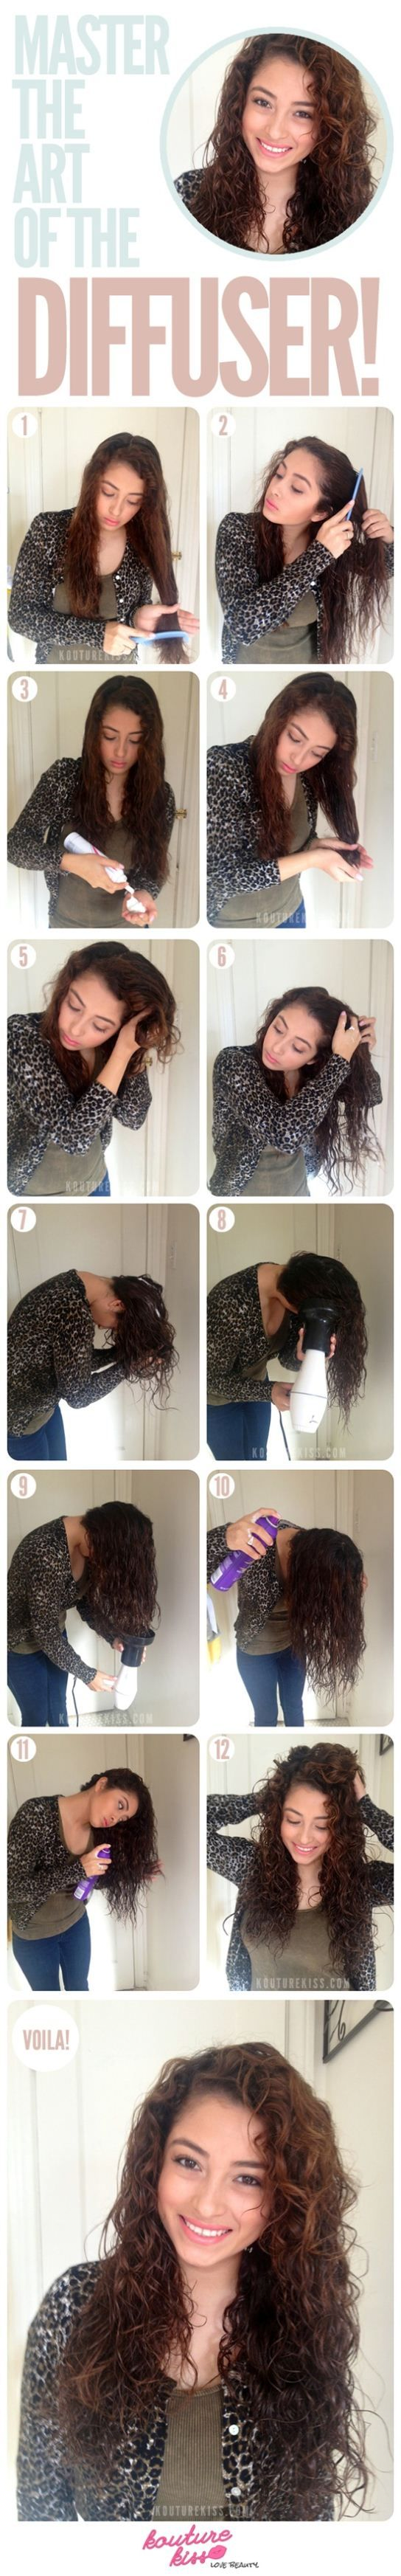 add a little gel after the mousse and you get a longer lasting scrunch, I do this hairstyle all the time the diffuser is a must but if you do not have one just keep the blow dryer far away on low warm setting while scrunching